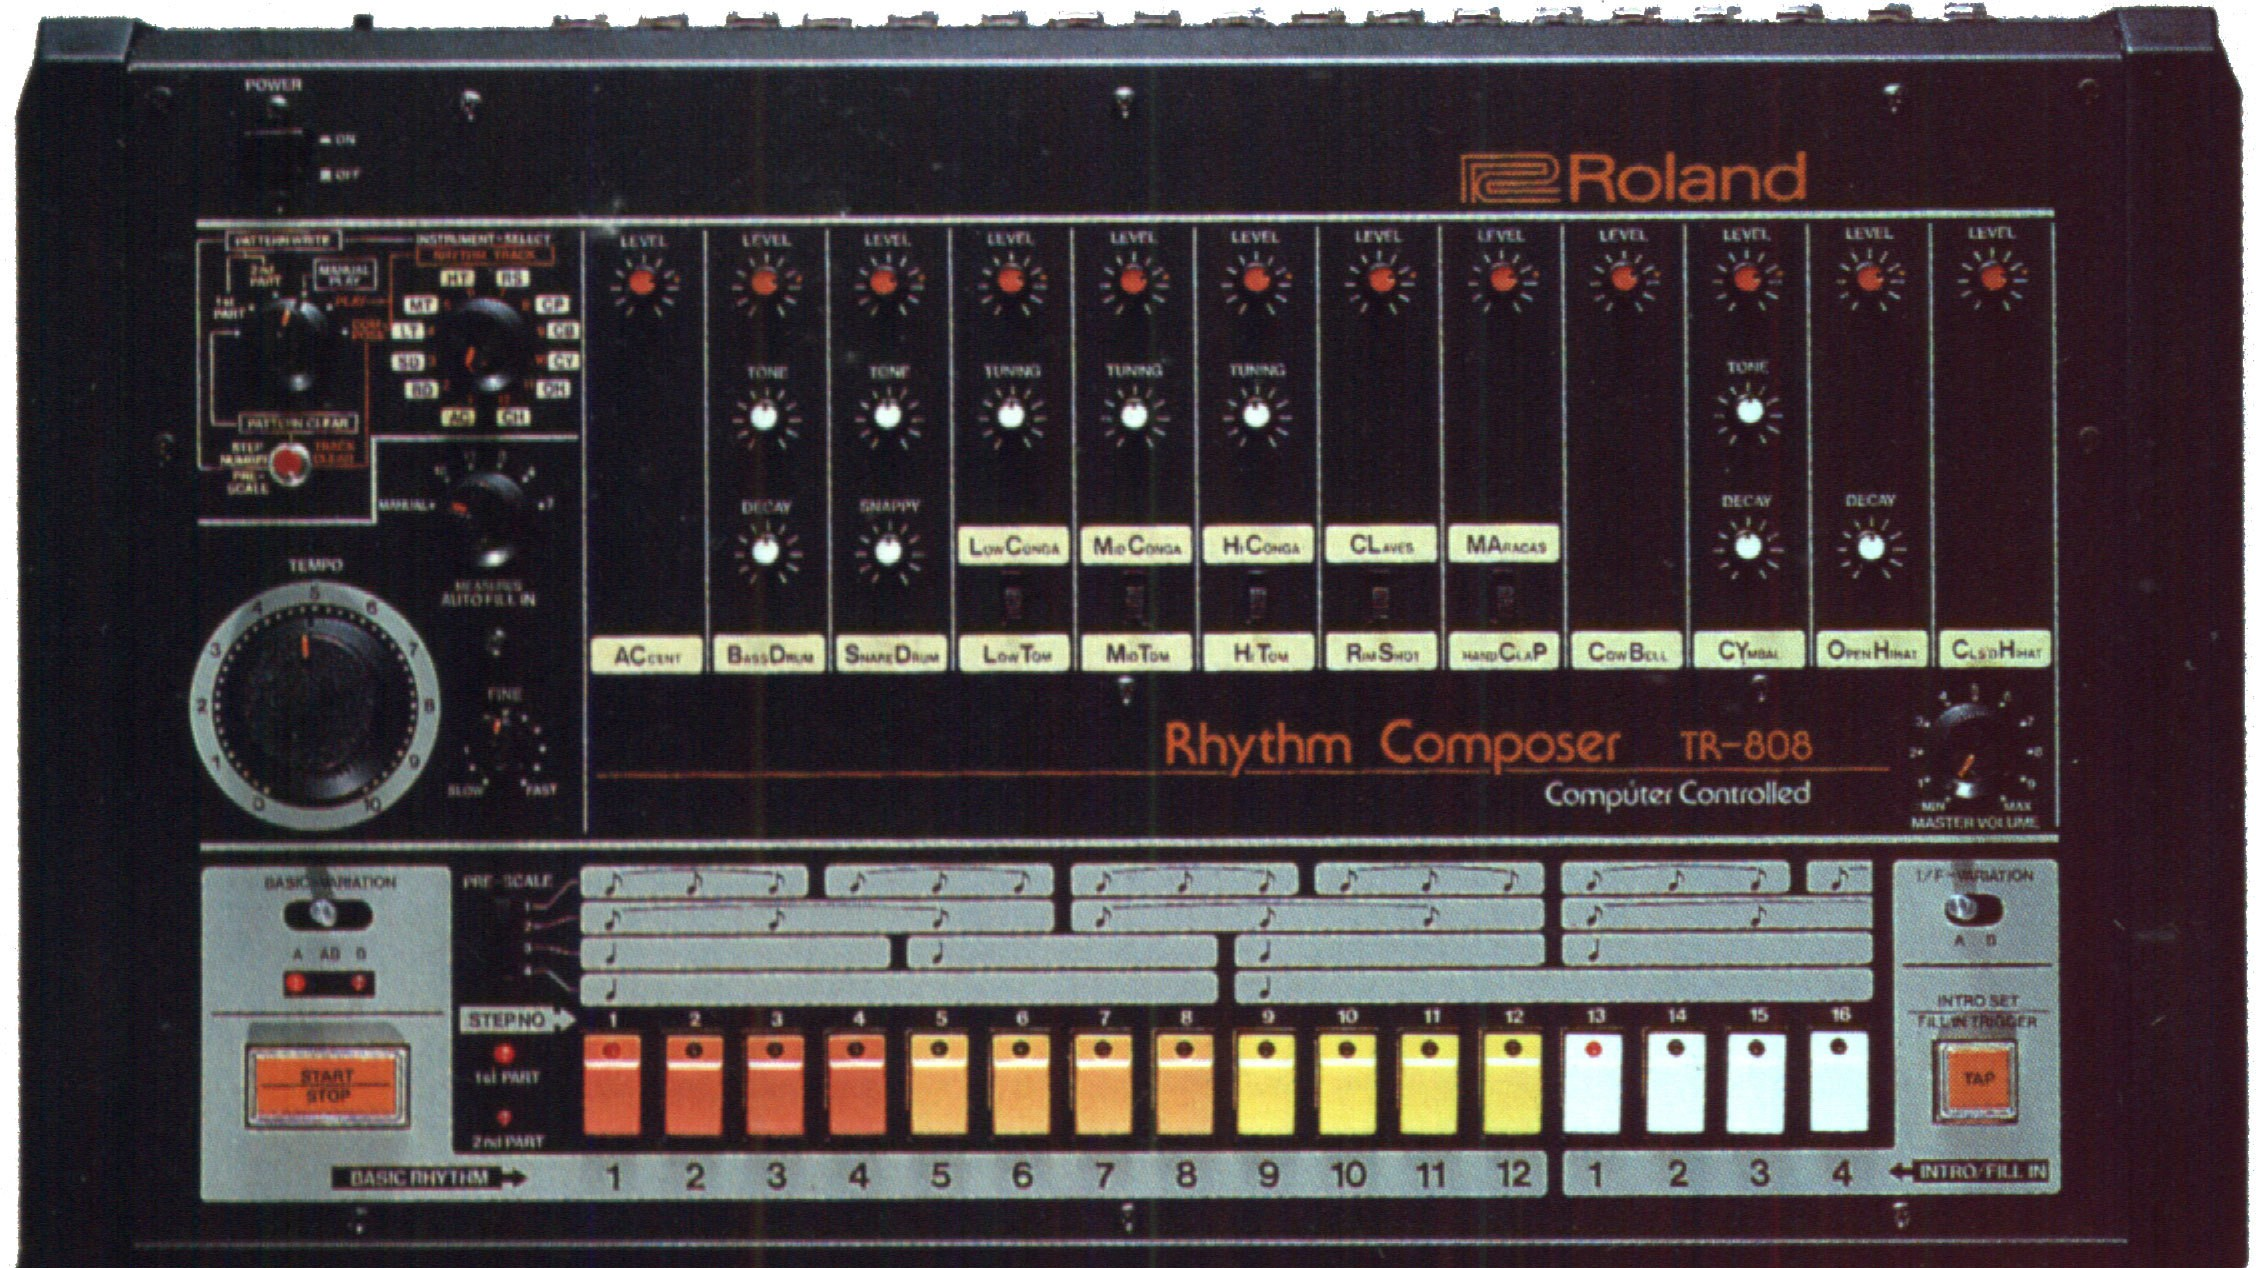 Don't Hate, 808. Here Are Eight Essential Tracks Featuring the Roland 808